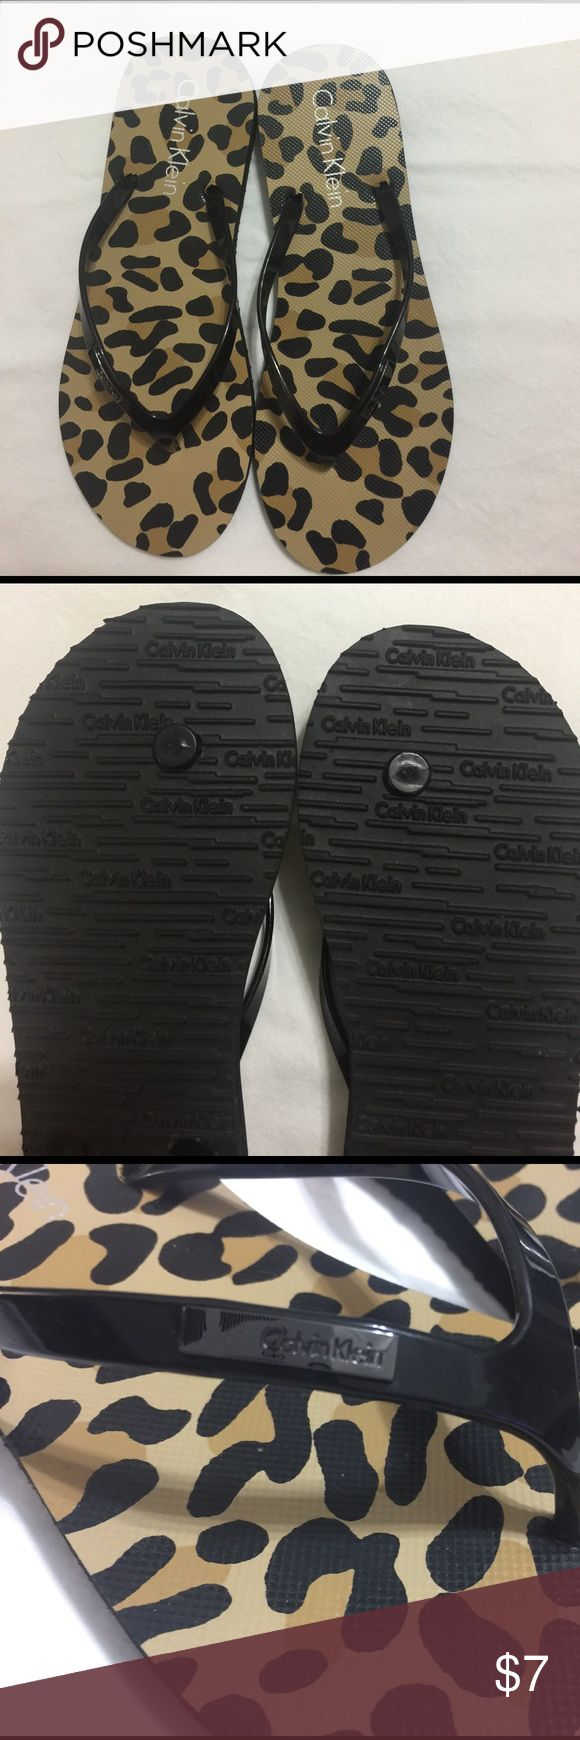 Calvin Klein slippers NWOT Black animal print slippers Calvin Klein Shoes Slippers